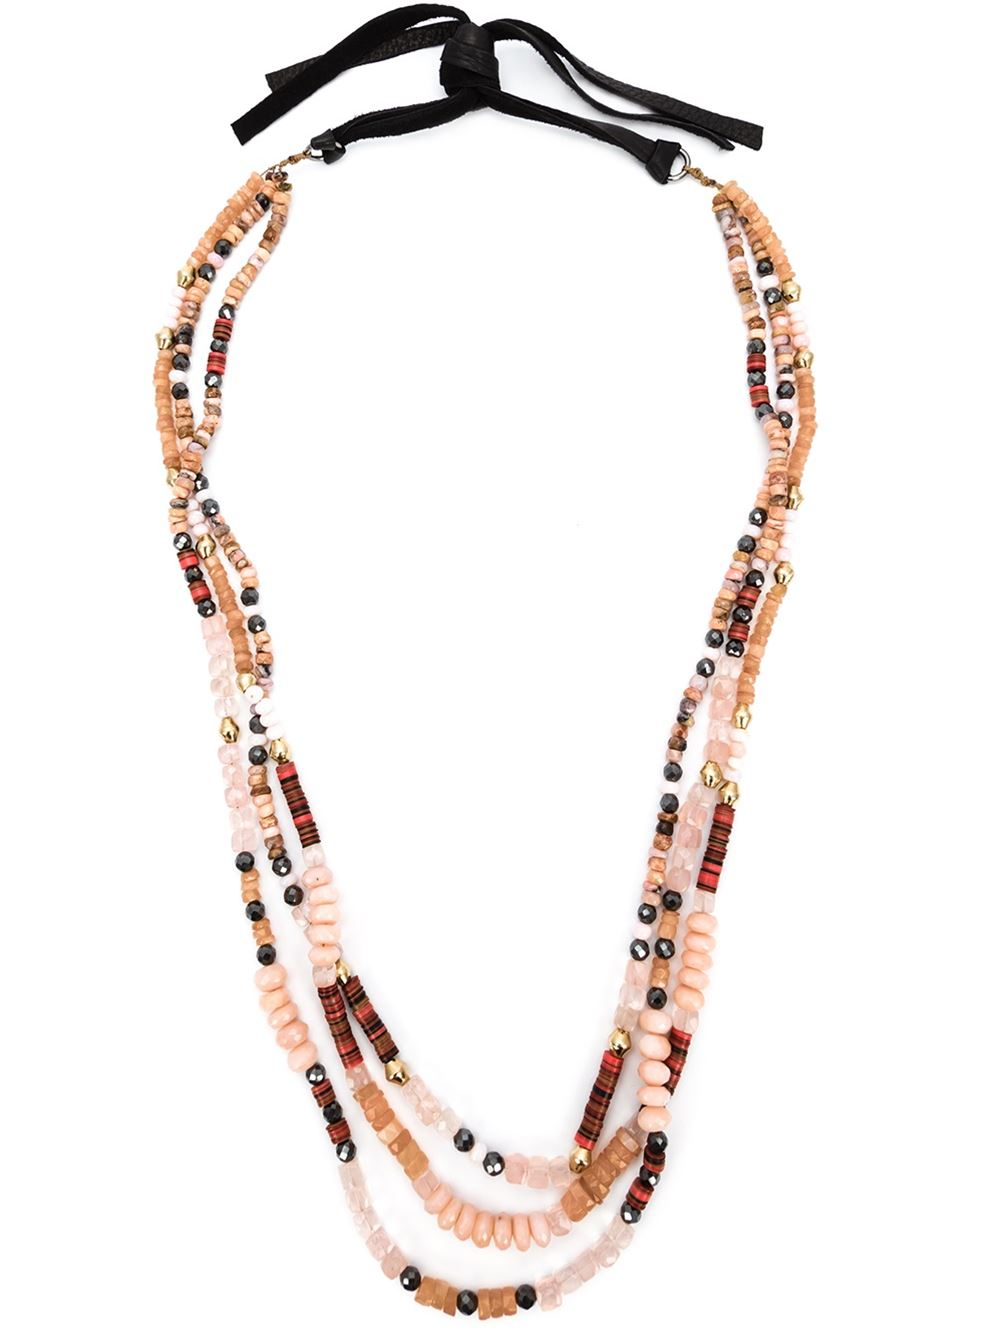 Royal nomad jewelry Mixed Stone Beaded Necklace in ...